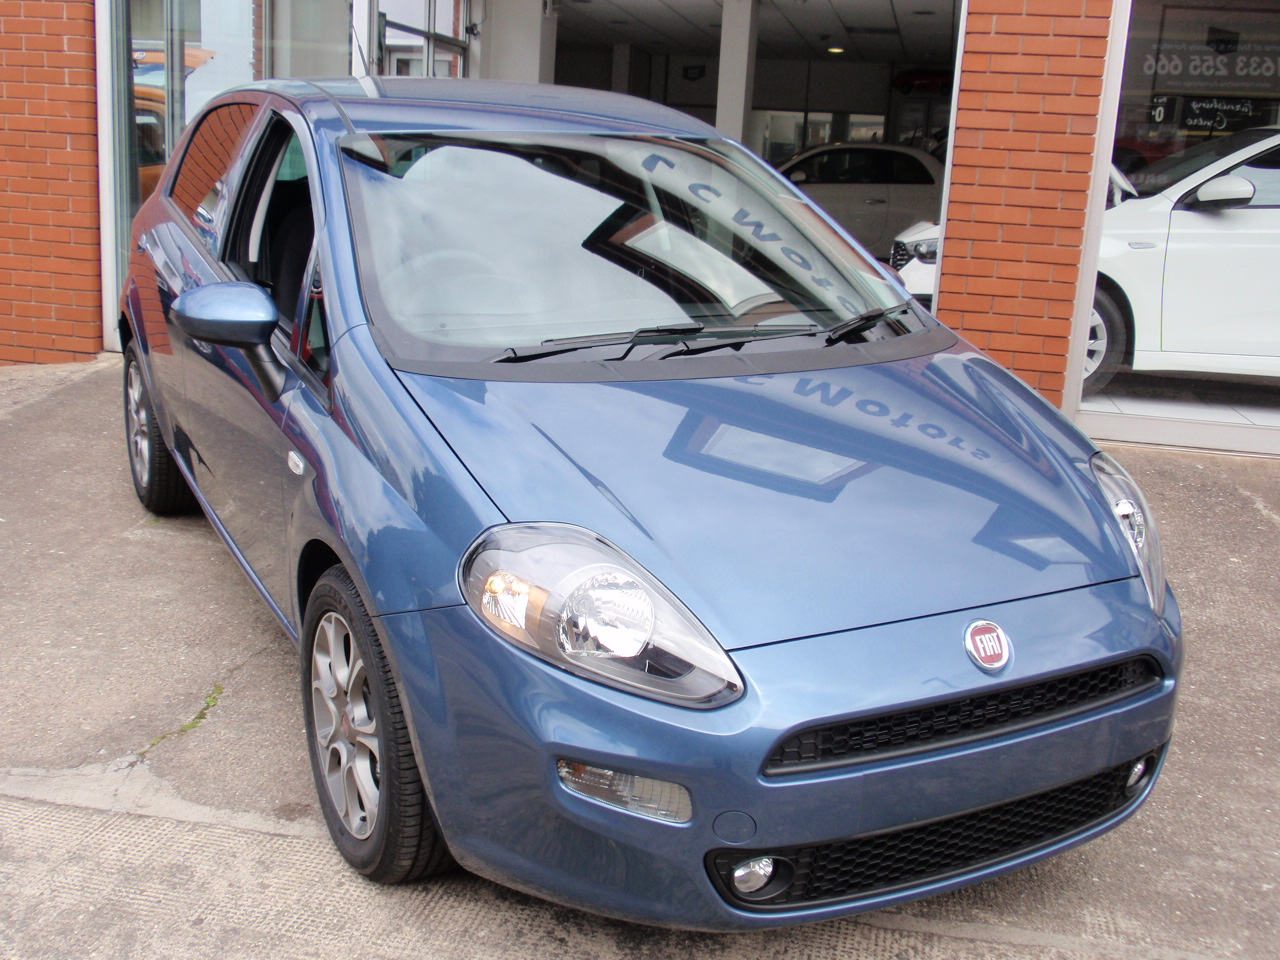 Fiat Punto II Restyling 2003 - 2007 Hatchback 5 door #1